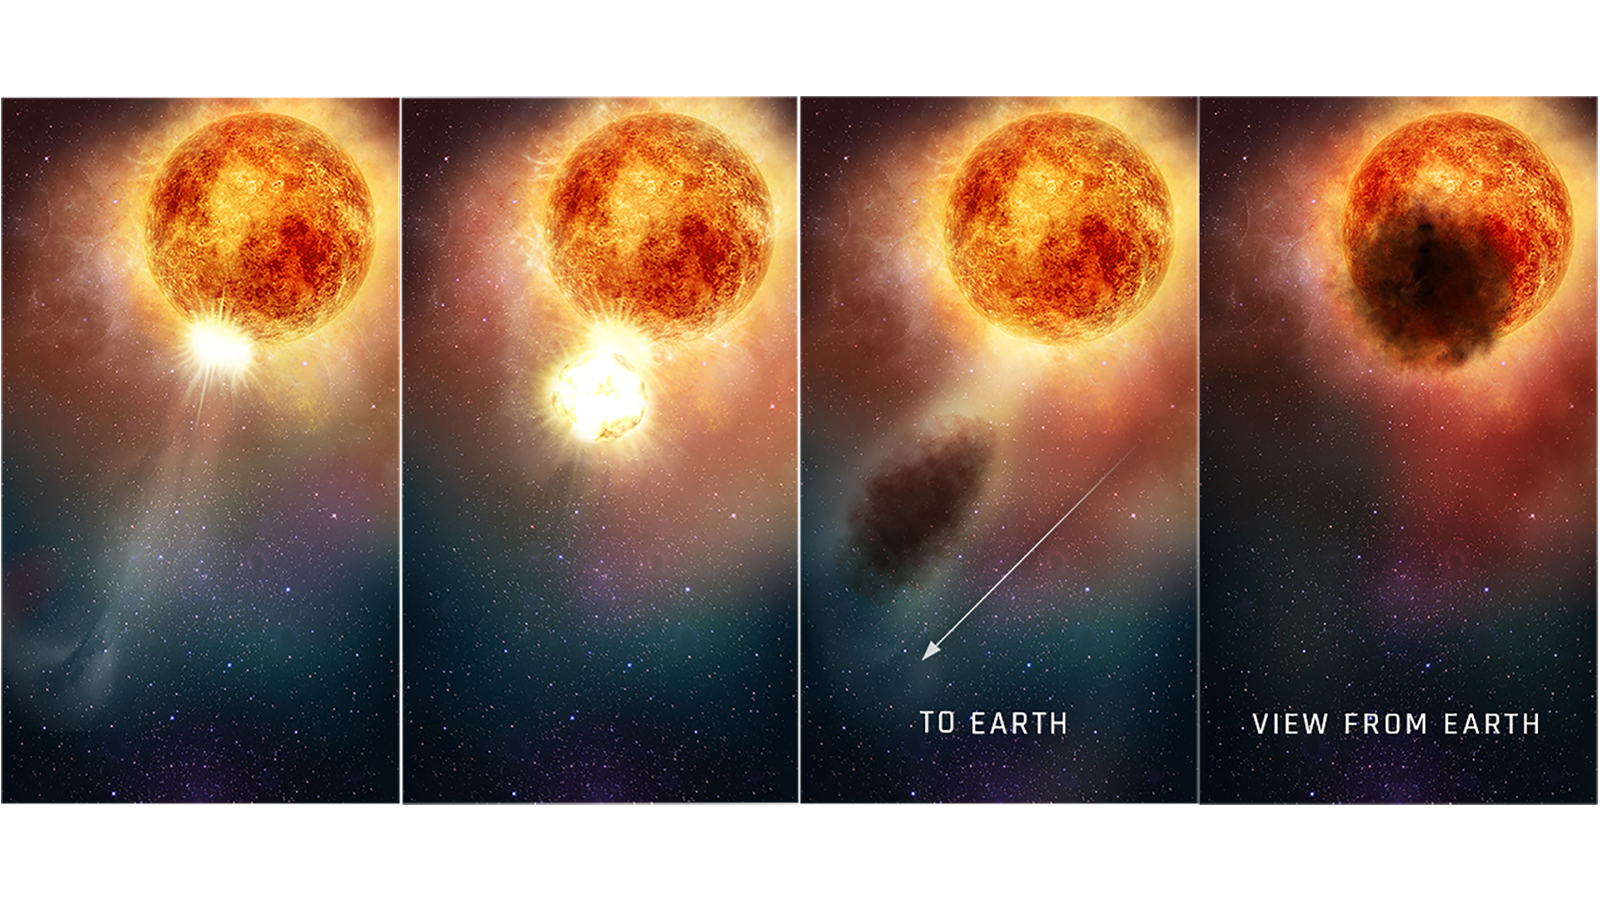 Hubble spies the culprit behind Betelgeuse star's dimming. And it may be happening again